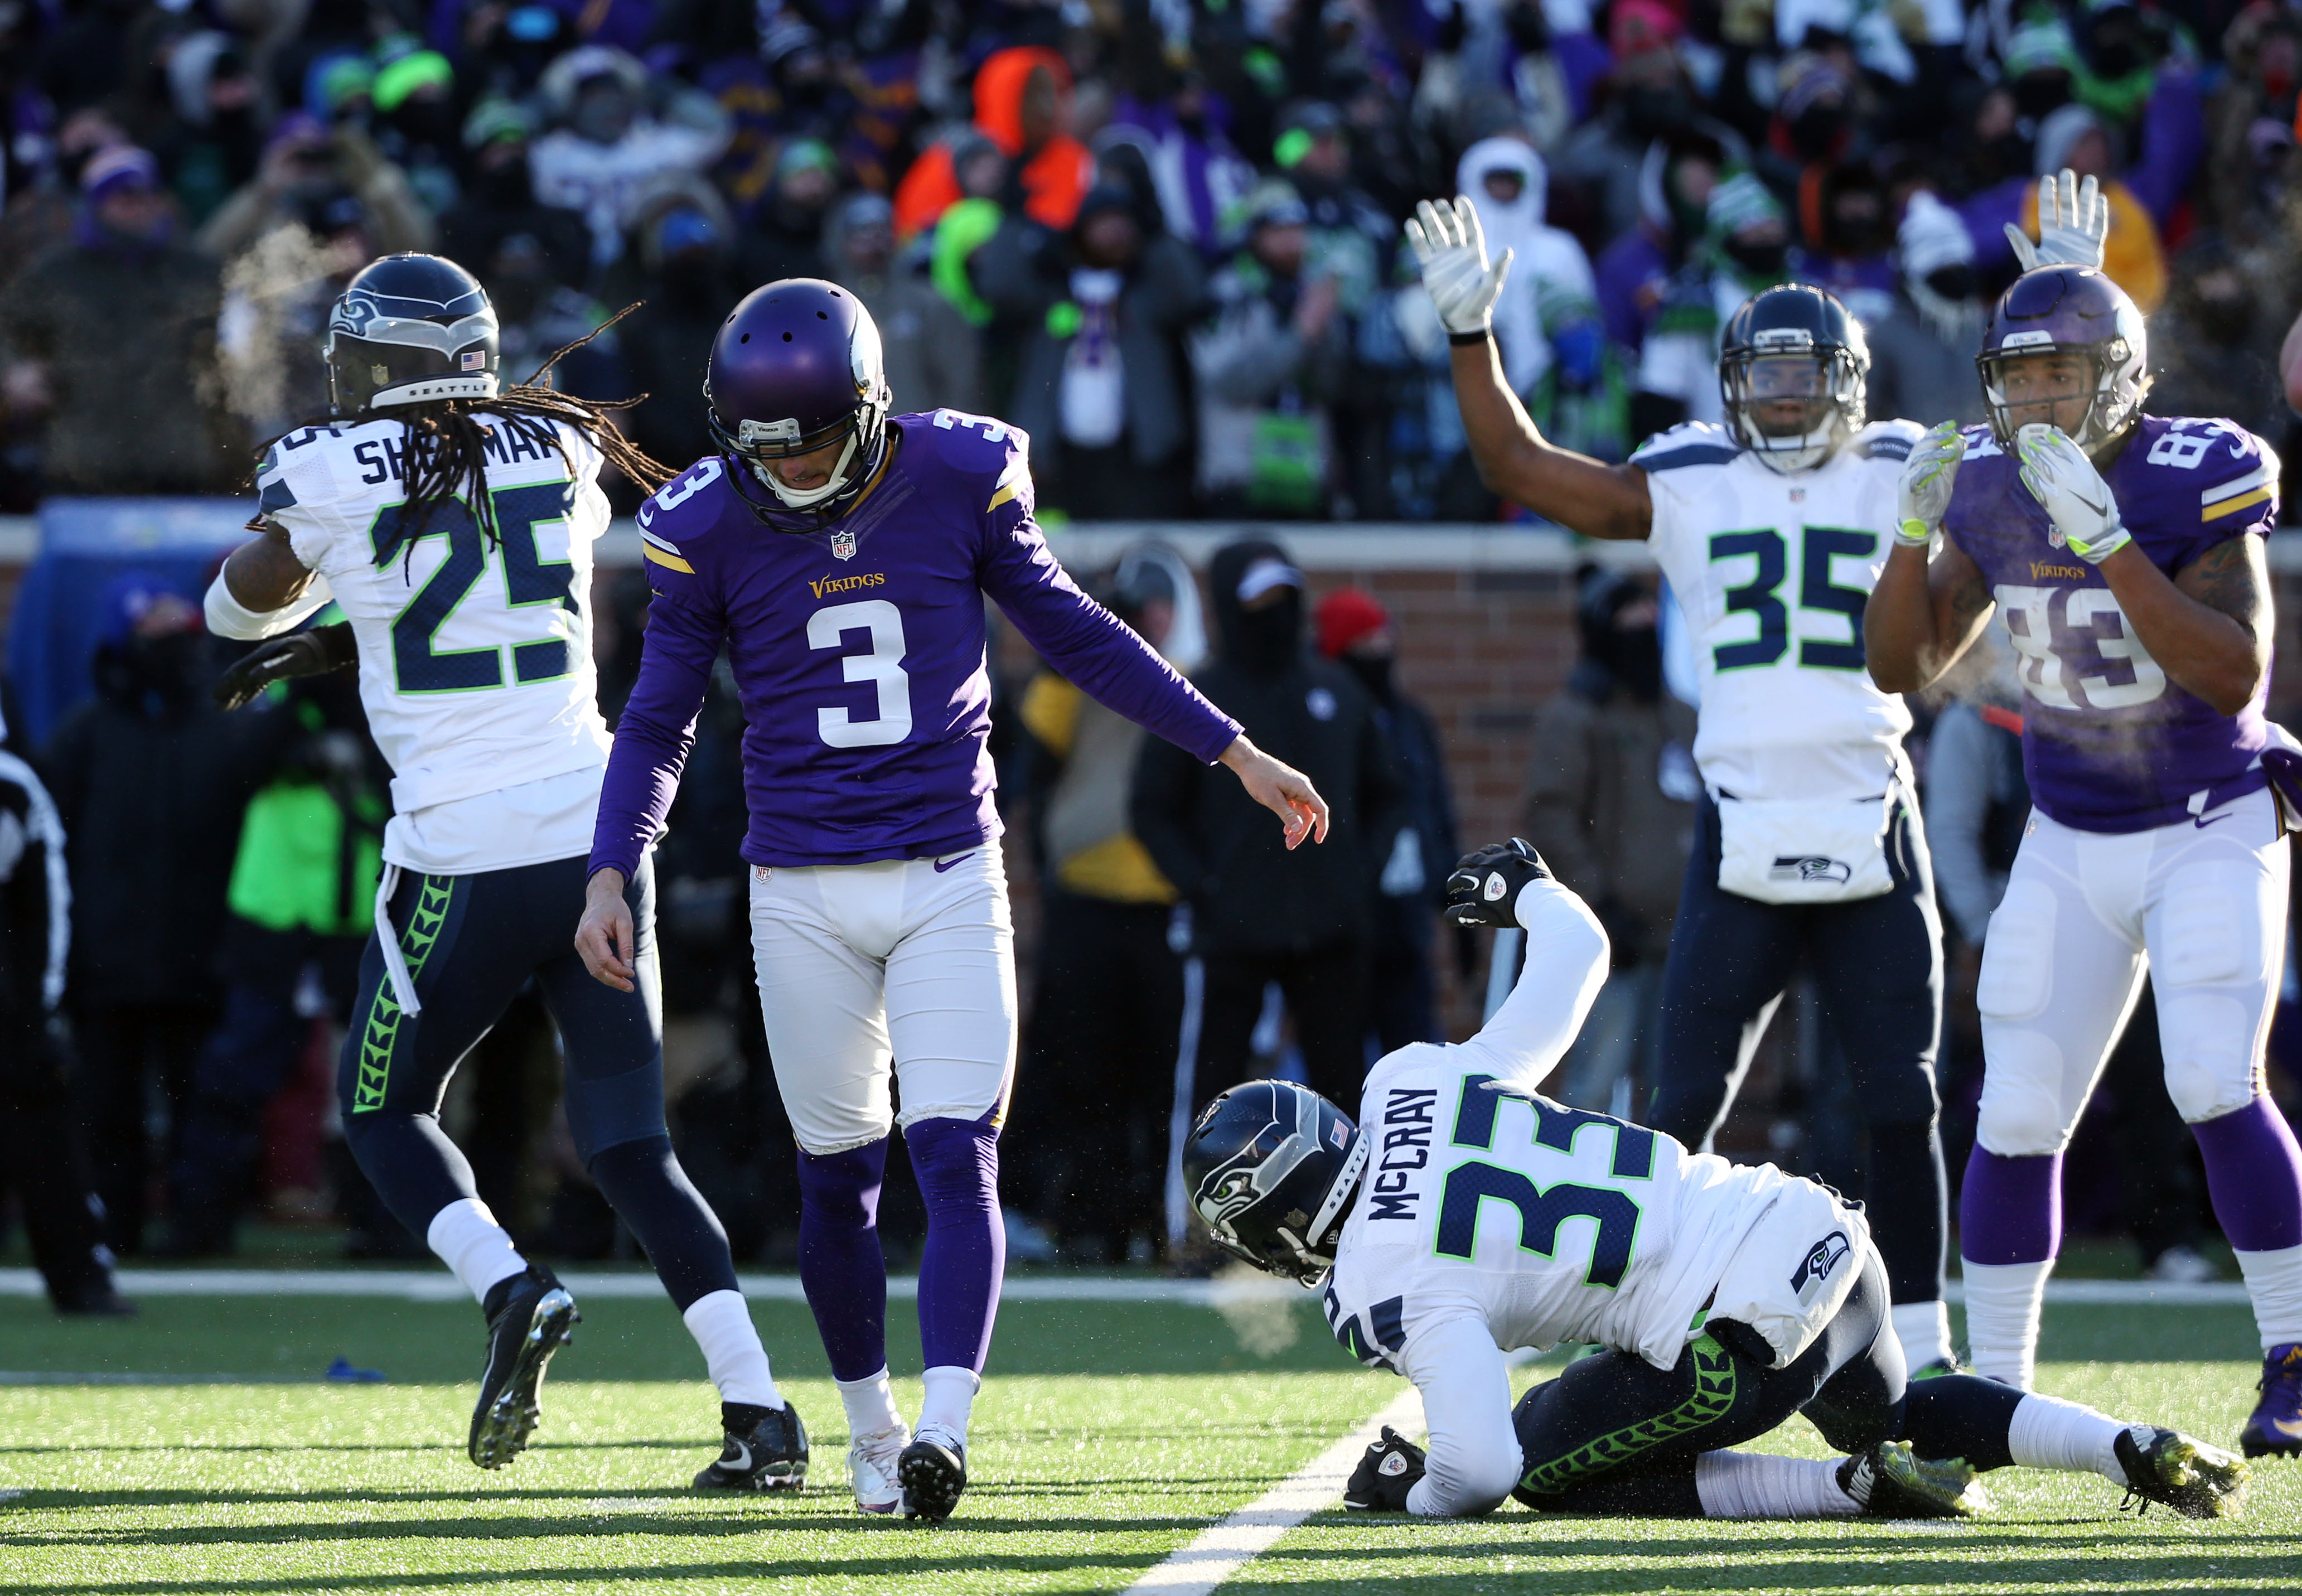 9049988-nfl-nfc-wild-card-seattle-seahawks-at-minnesota-vikings